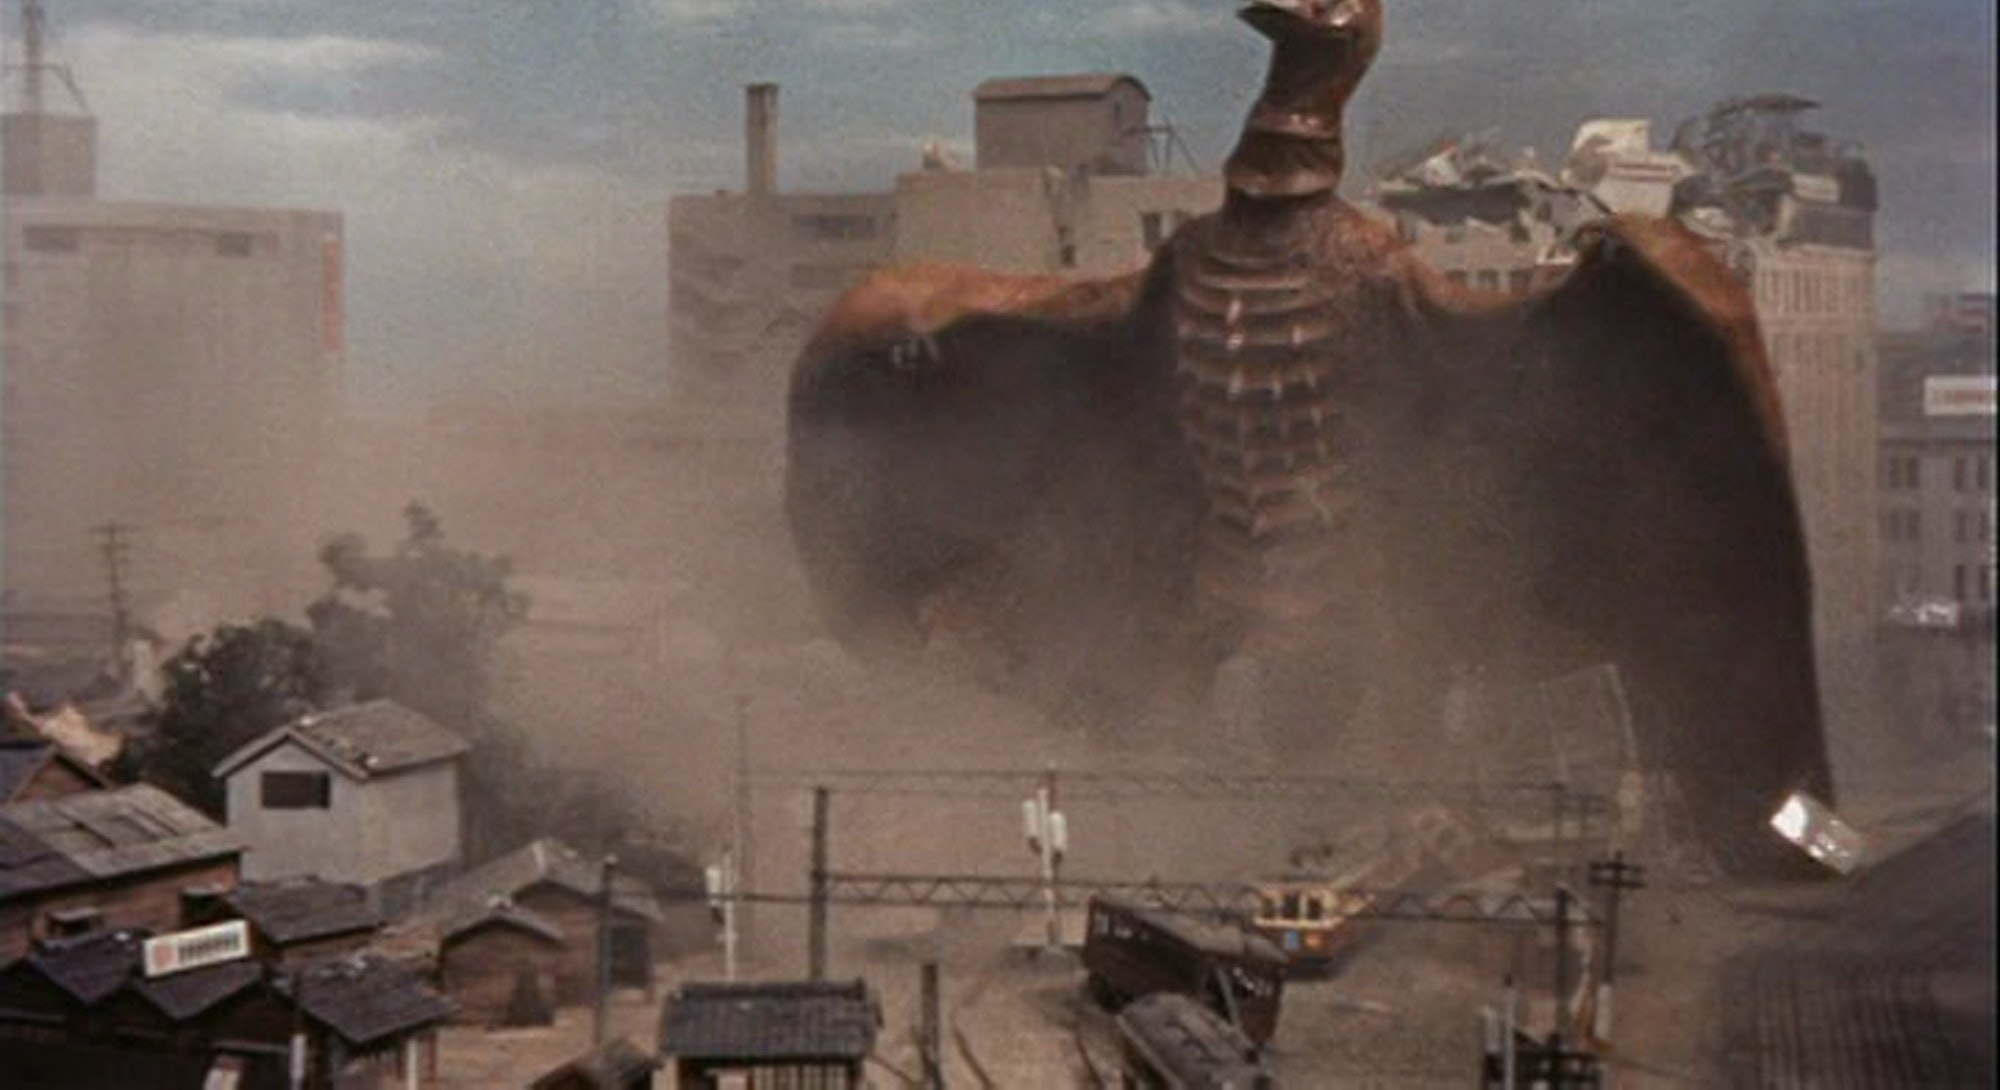 rodan monster destroying city with ruined building models in background